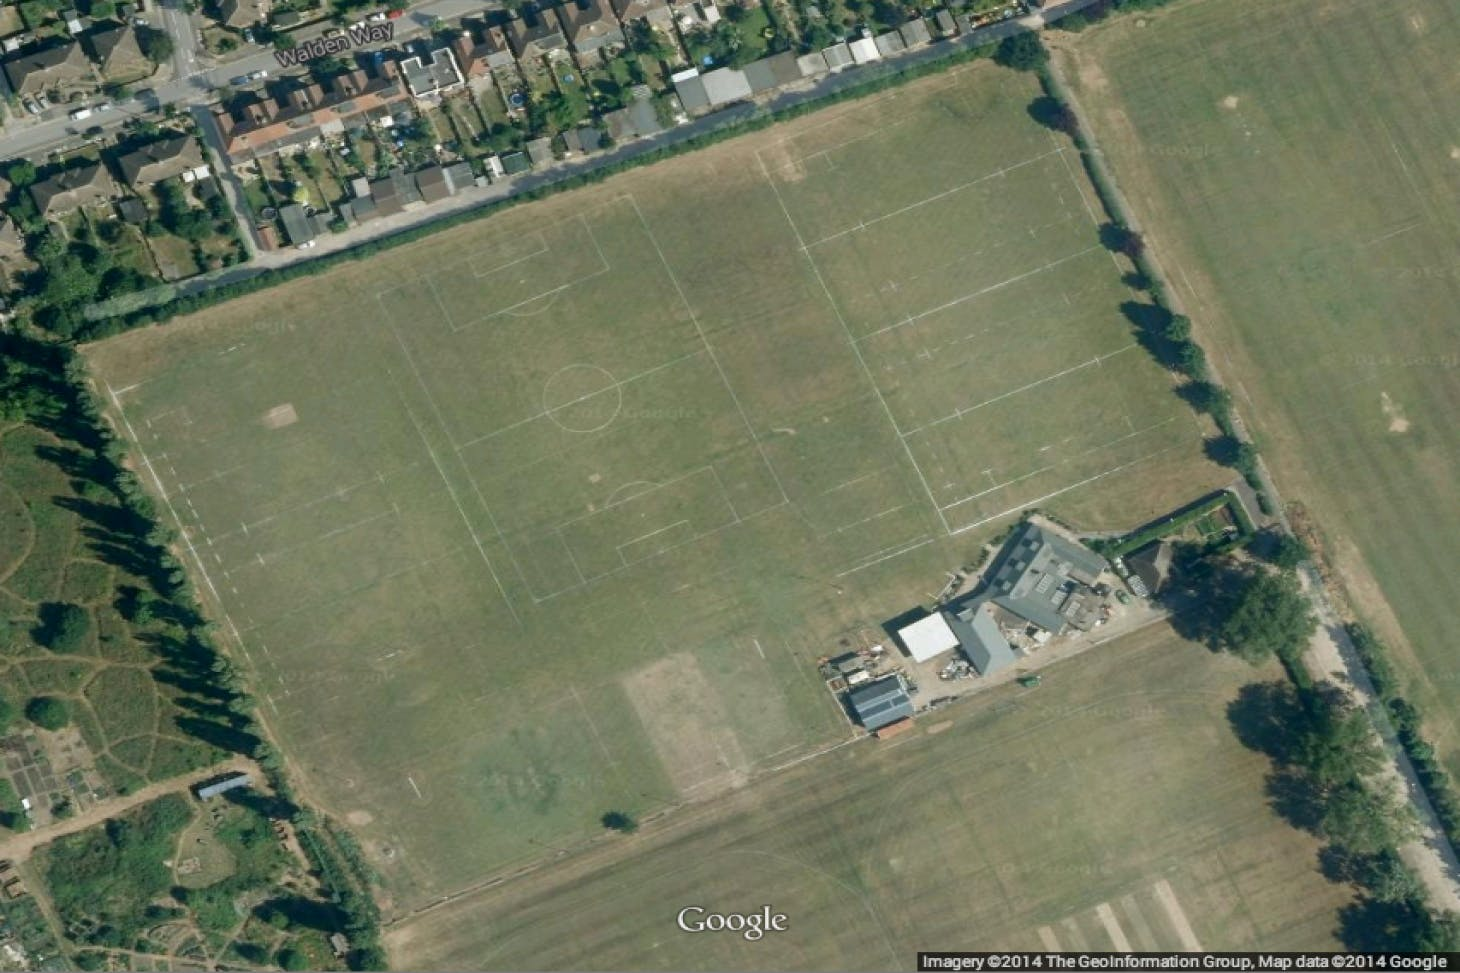 Fairlop Oak Playing Field 5 a side | Grass football pitch